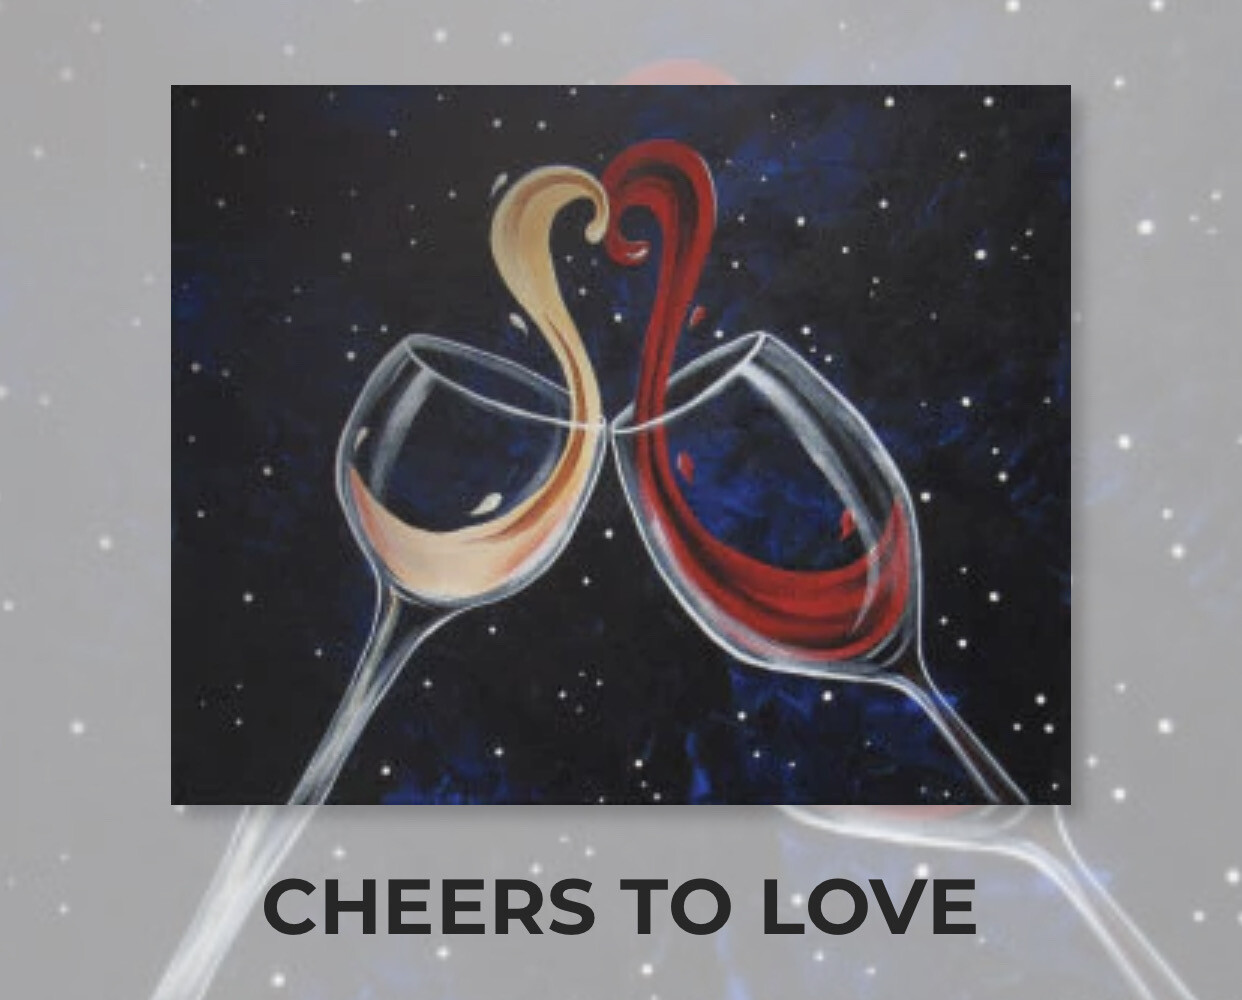 Cheers To Love ADULT Acrylic Paint On Canvas DIY Art Kit